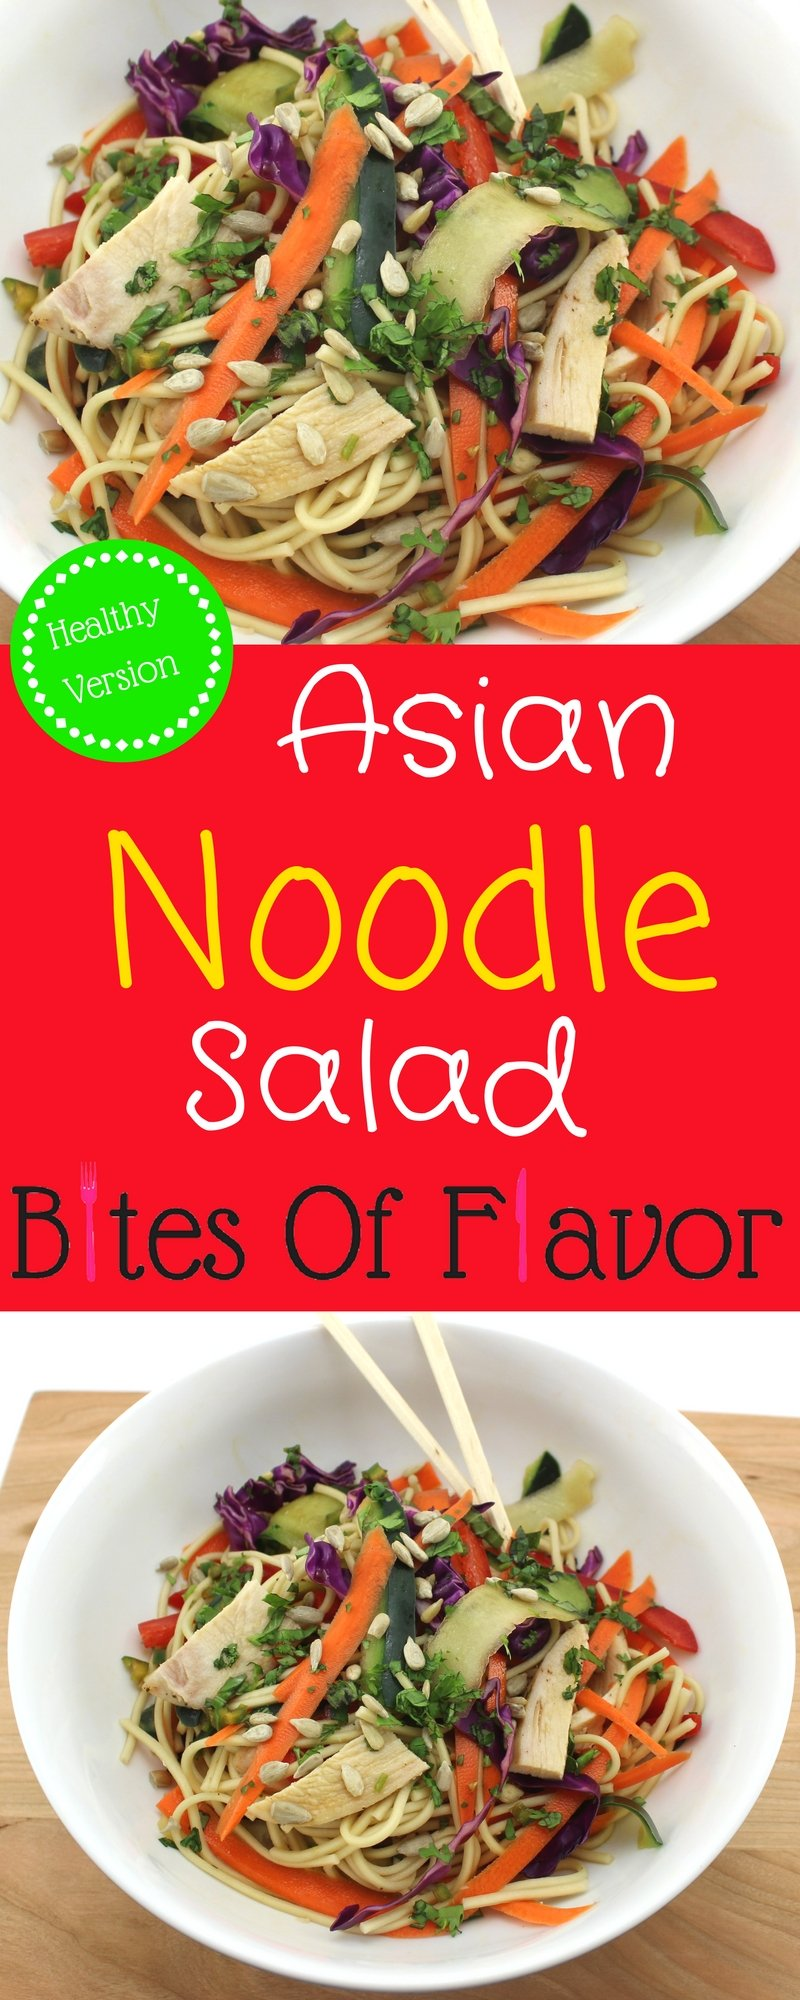 Asian Noodle Salad is easy to make and the perfect meal prep lunch for a busy week. Fresh ingredients with a sweet and spicy salad dressing. Weight Watchers friendly recipe. www.bitesofflavor.com